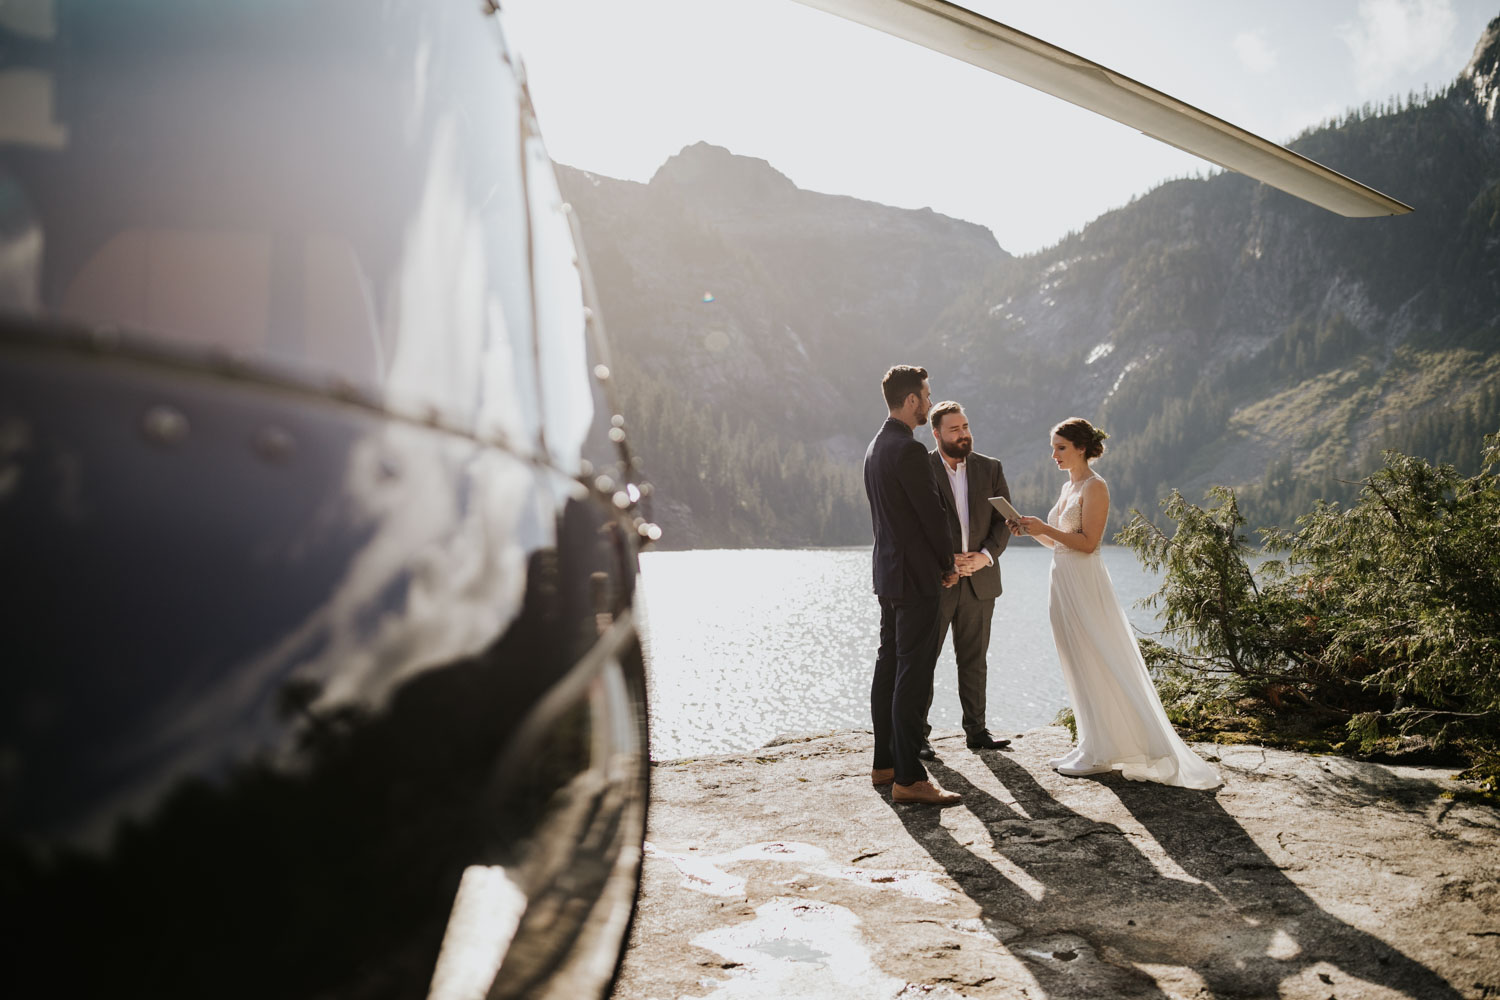 Sky helicopter elopement ceremony location in the secluded Vancouver BC mountains at Widgeon Peak and lake